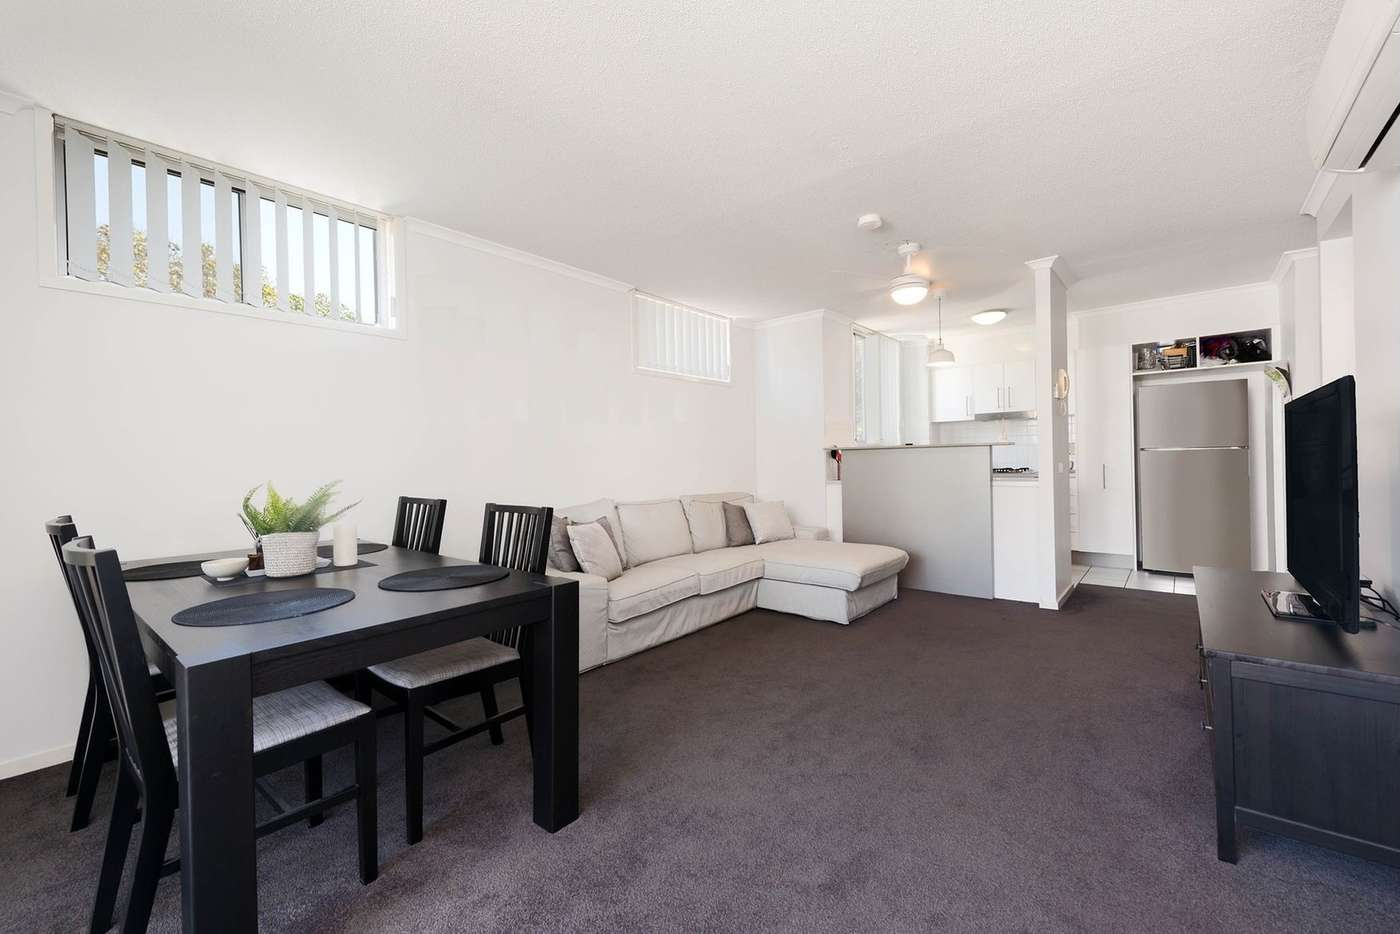 Main view of Homely apartment listing, 69/2 Campbell Street, Toowong QLD 4066